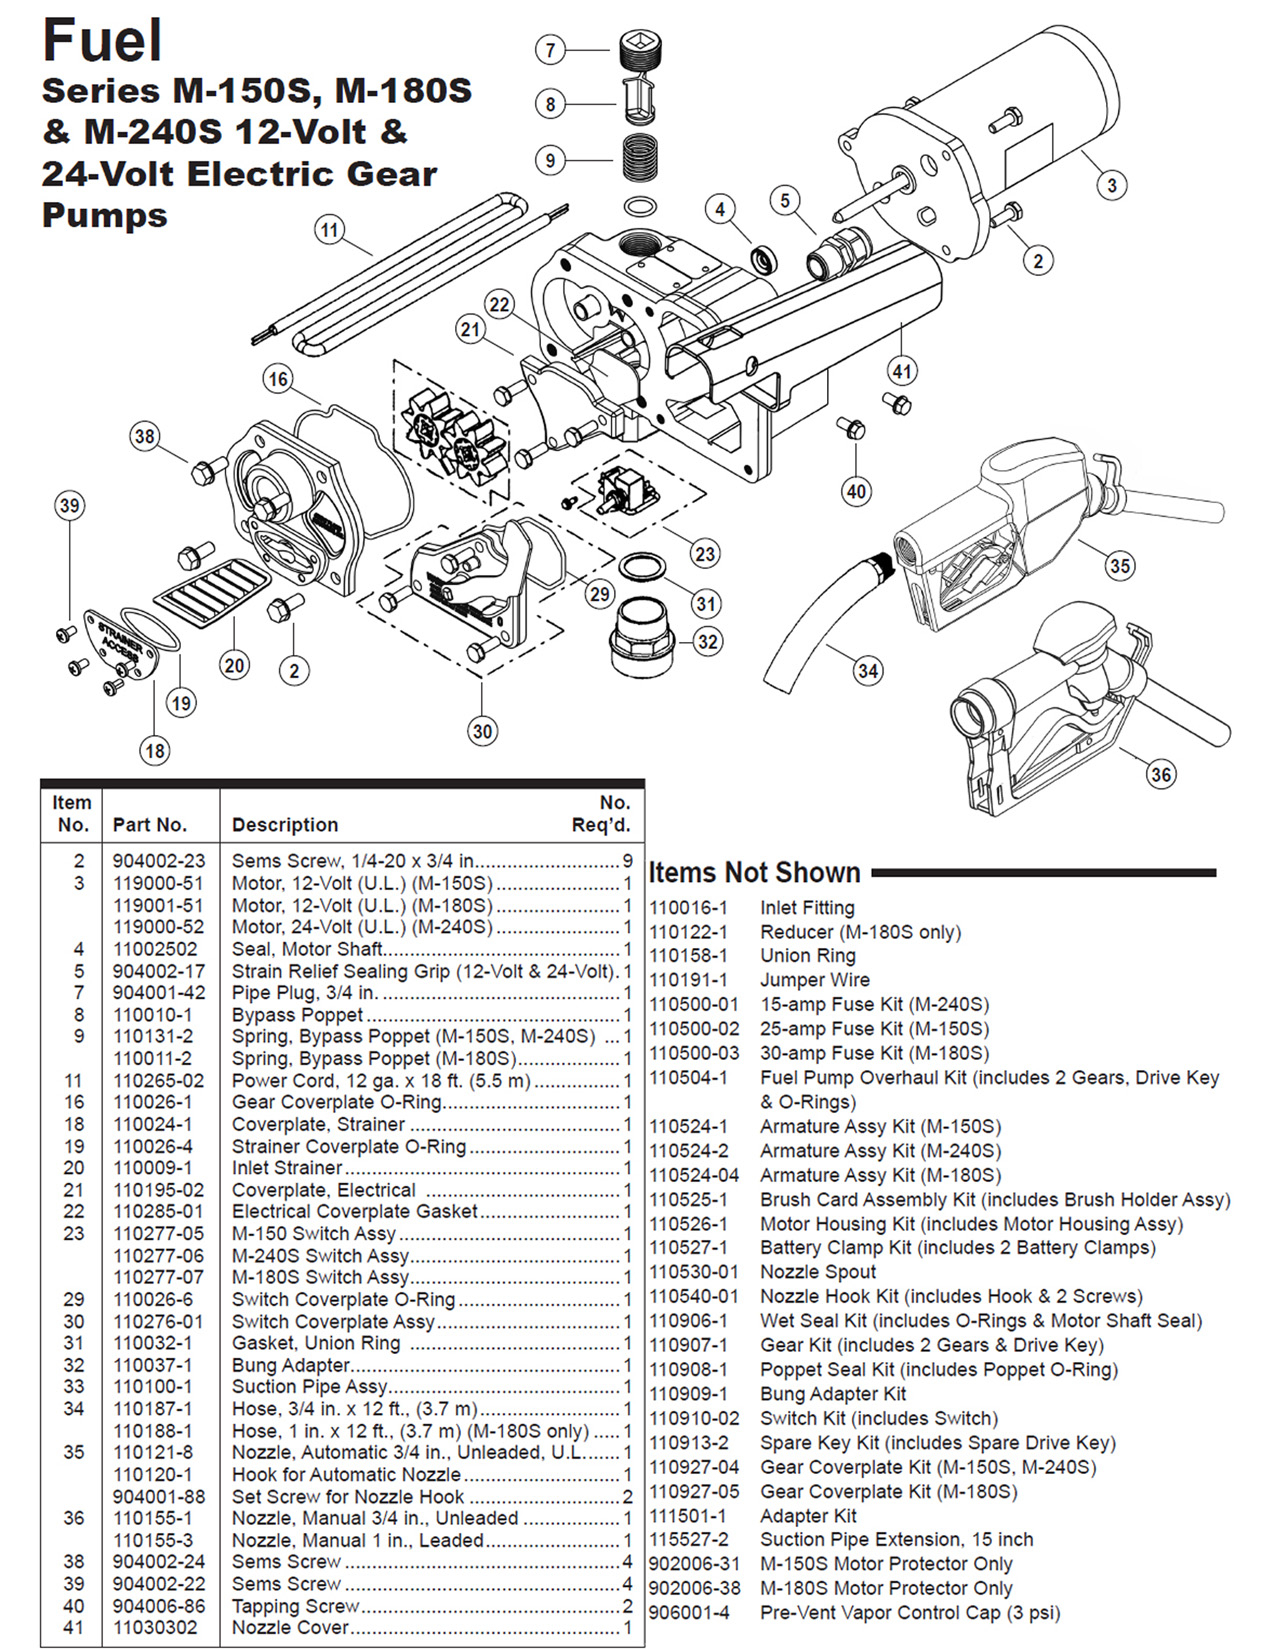 A 120 Plug Wiring Diagram